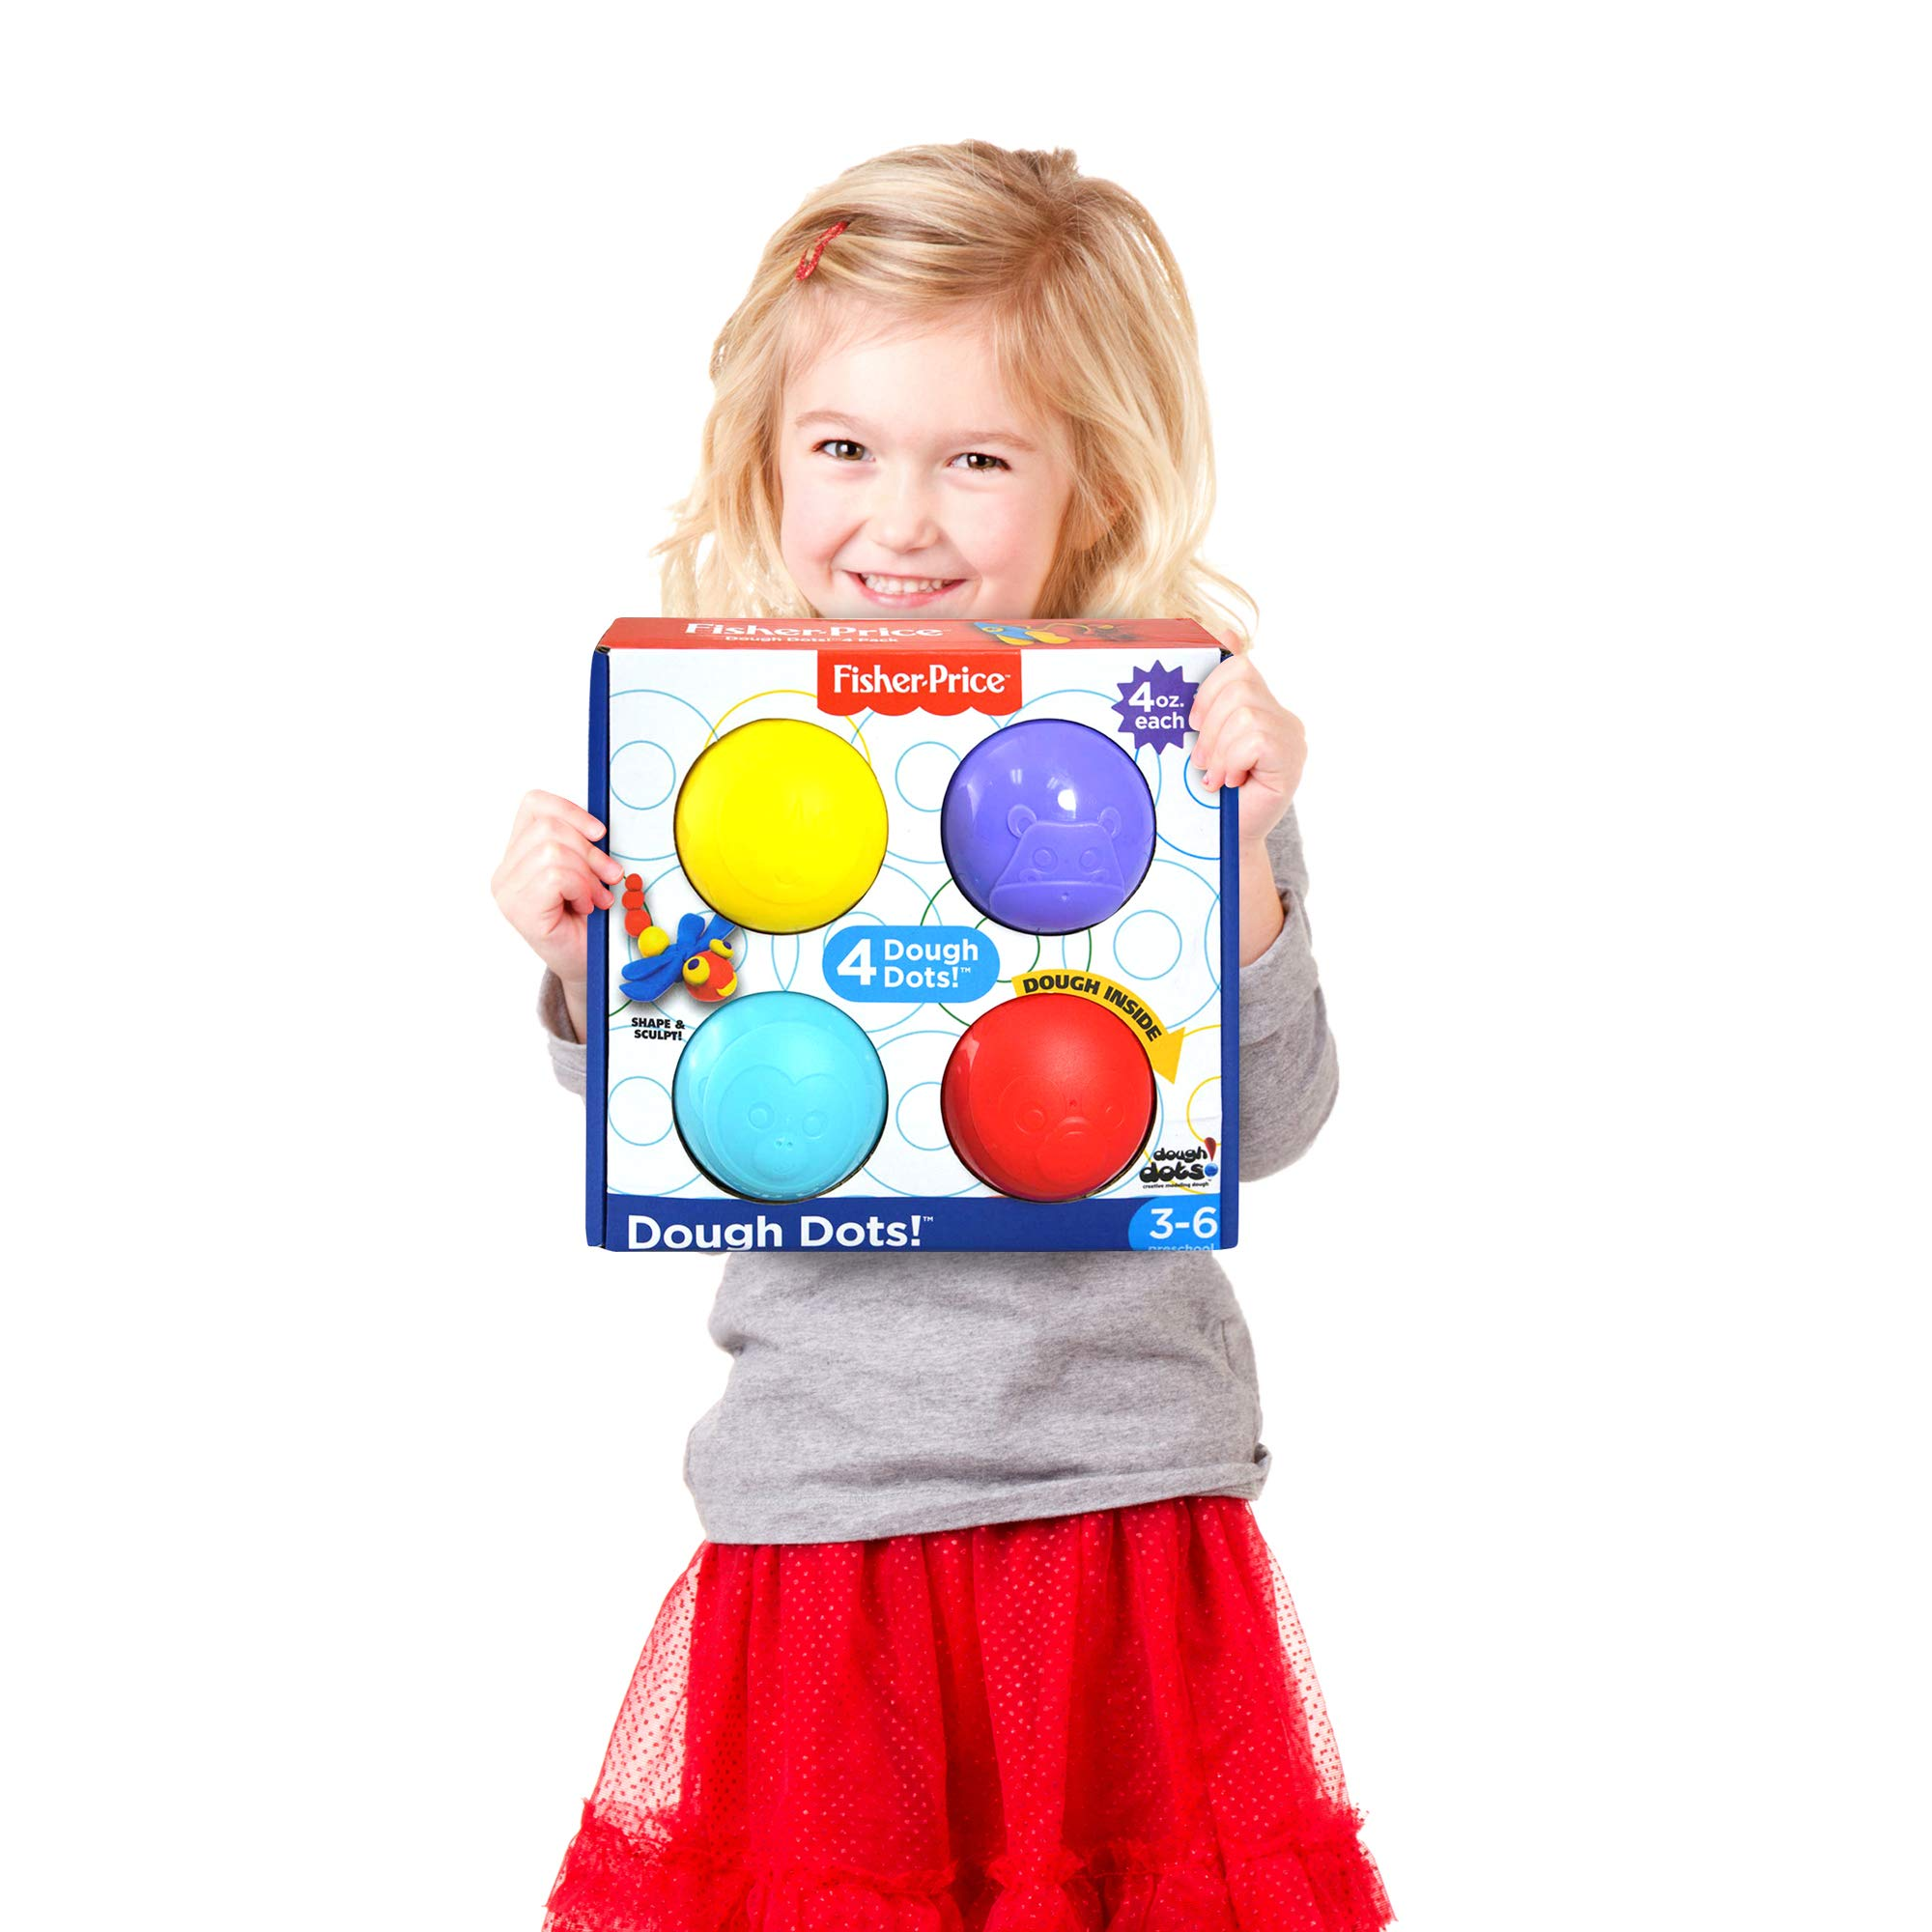 Dough Dots! Playdough Set Modeling Magic Clay Travel Toy Kit Playsets for Kids with Non-Toxic and Child Safe Creative Tools Press 4oz Dots (4 - Pack)